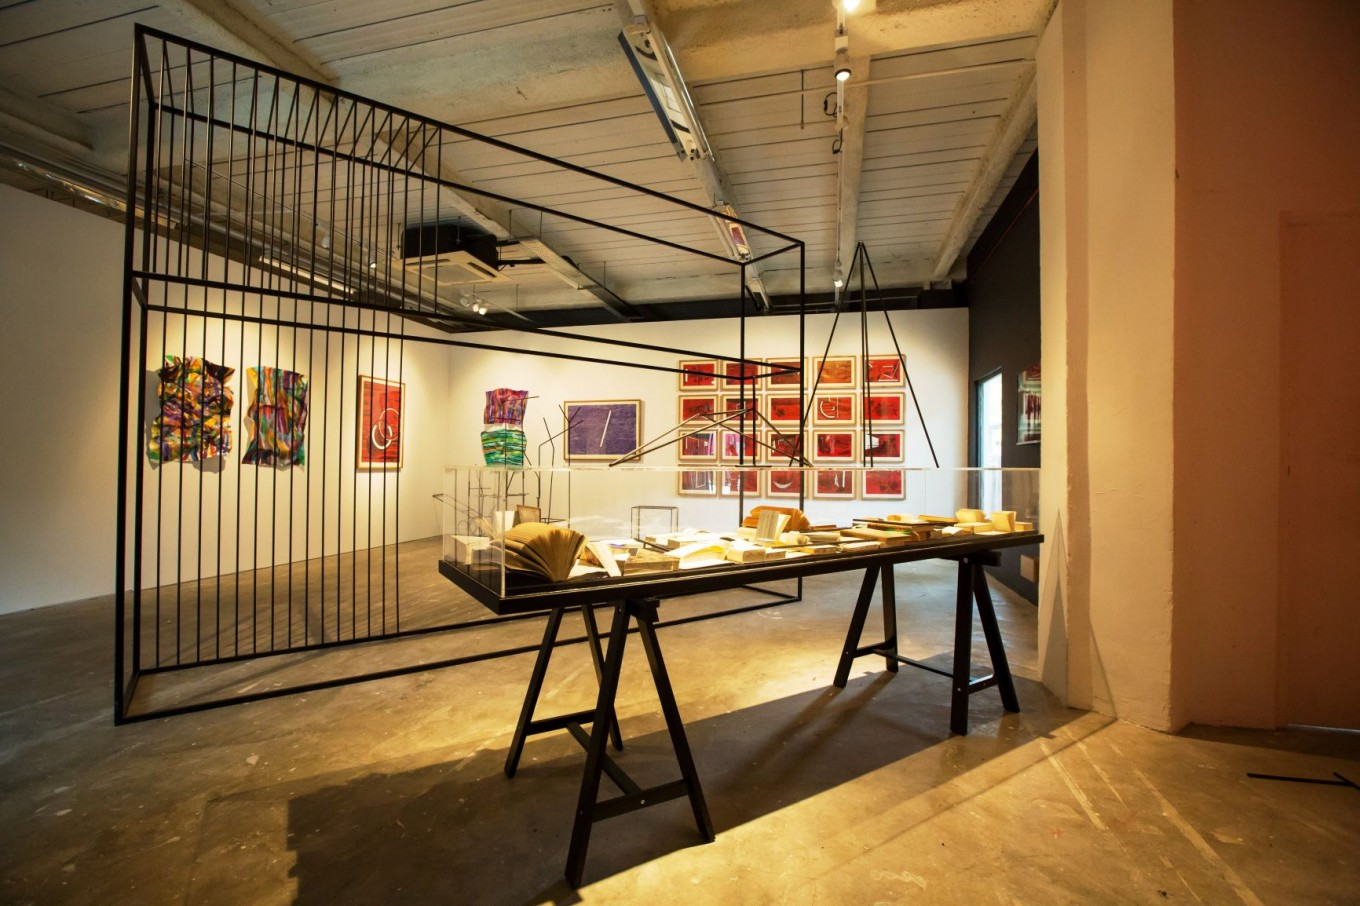 Singapore Biennale takes every step in the right direction